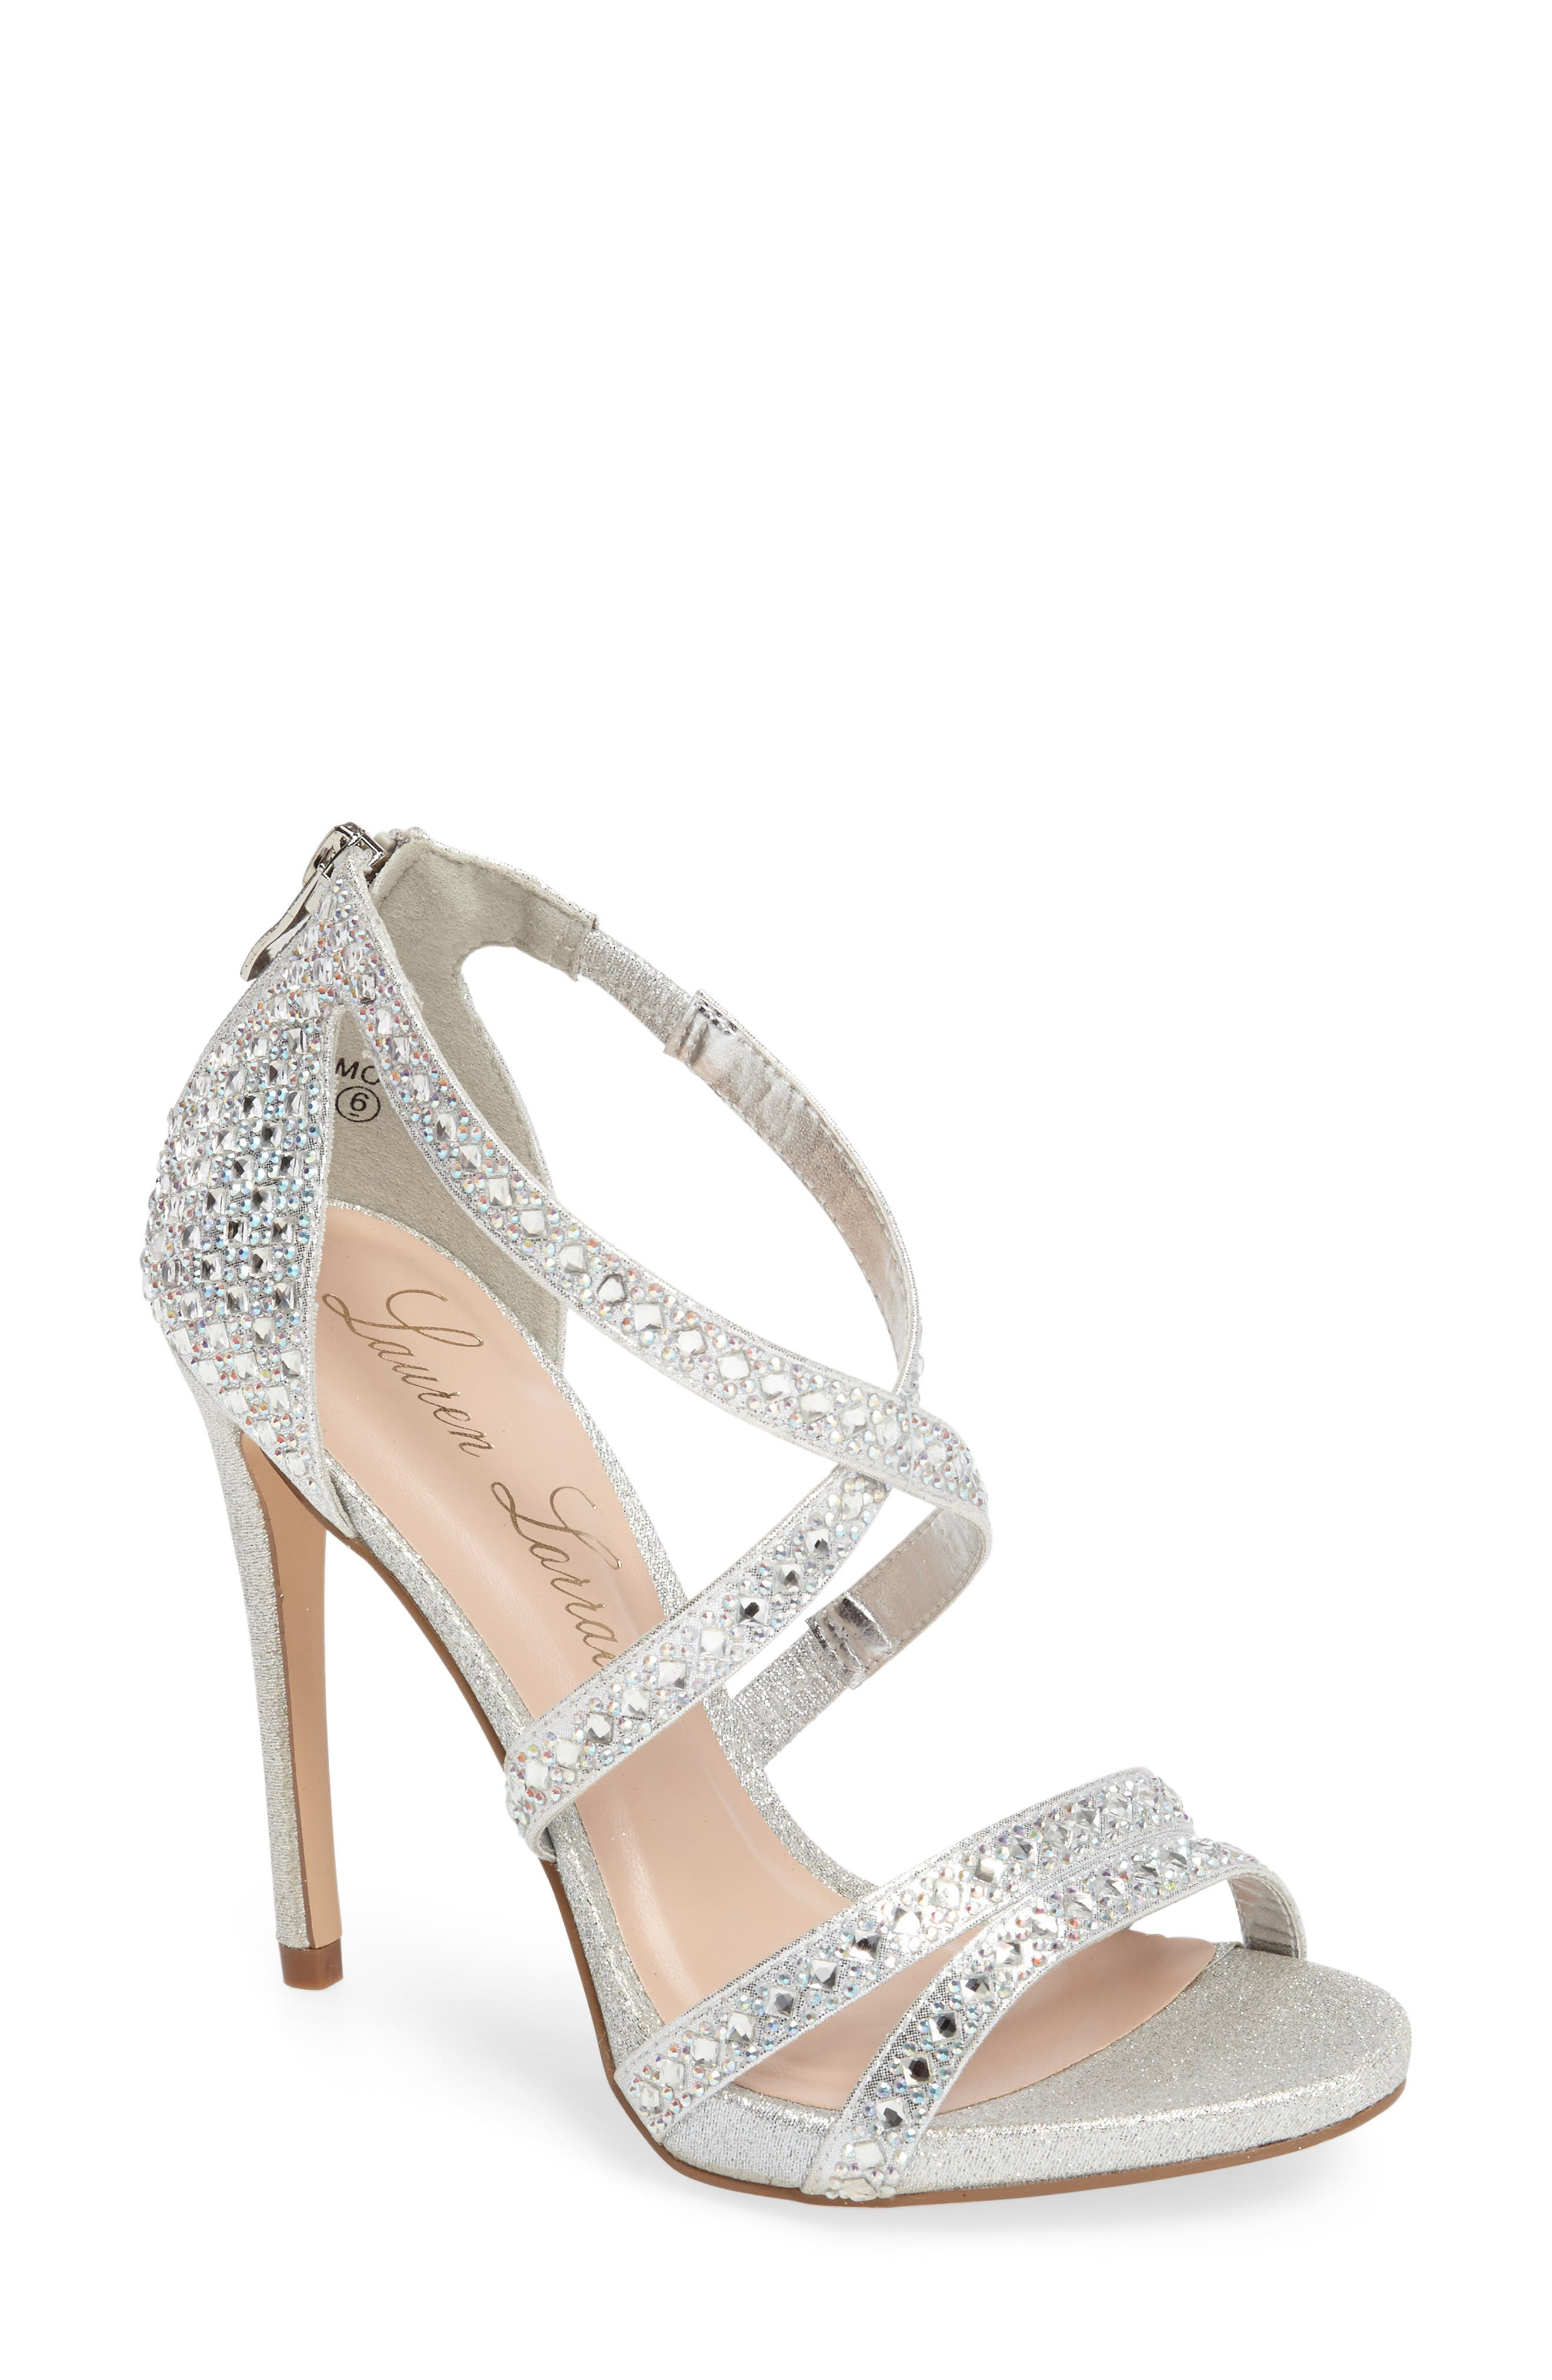 Amore Sandal,                         Main,                         color, Silver